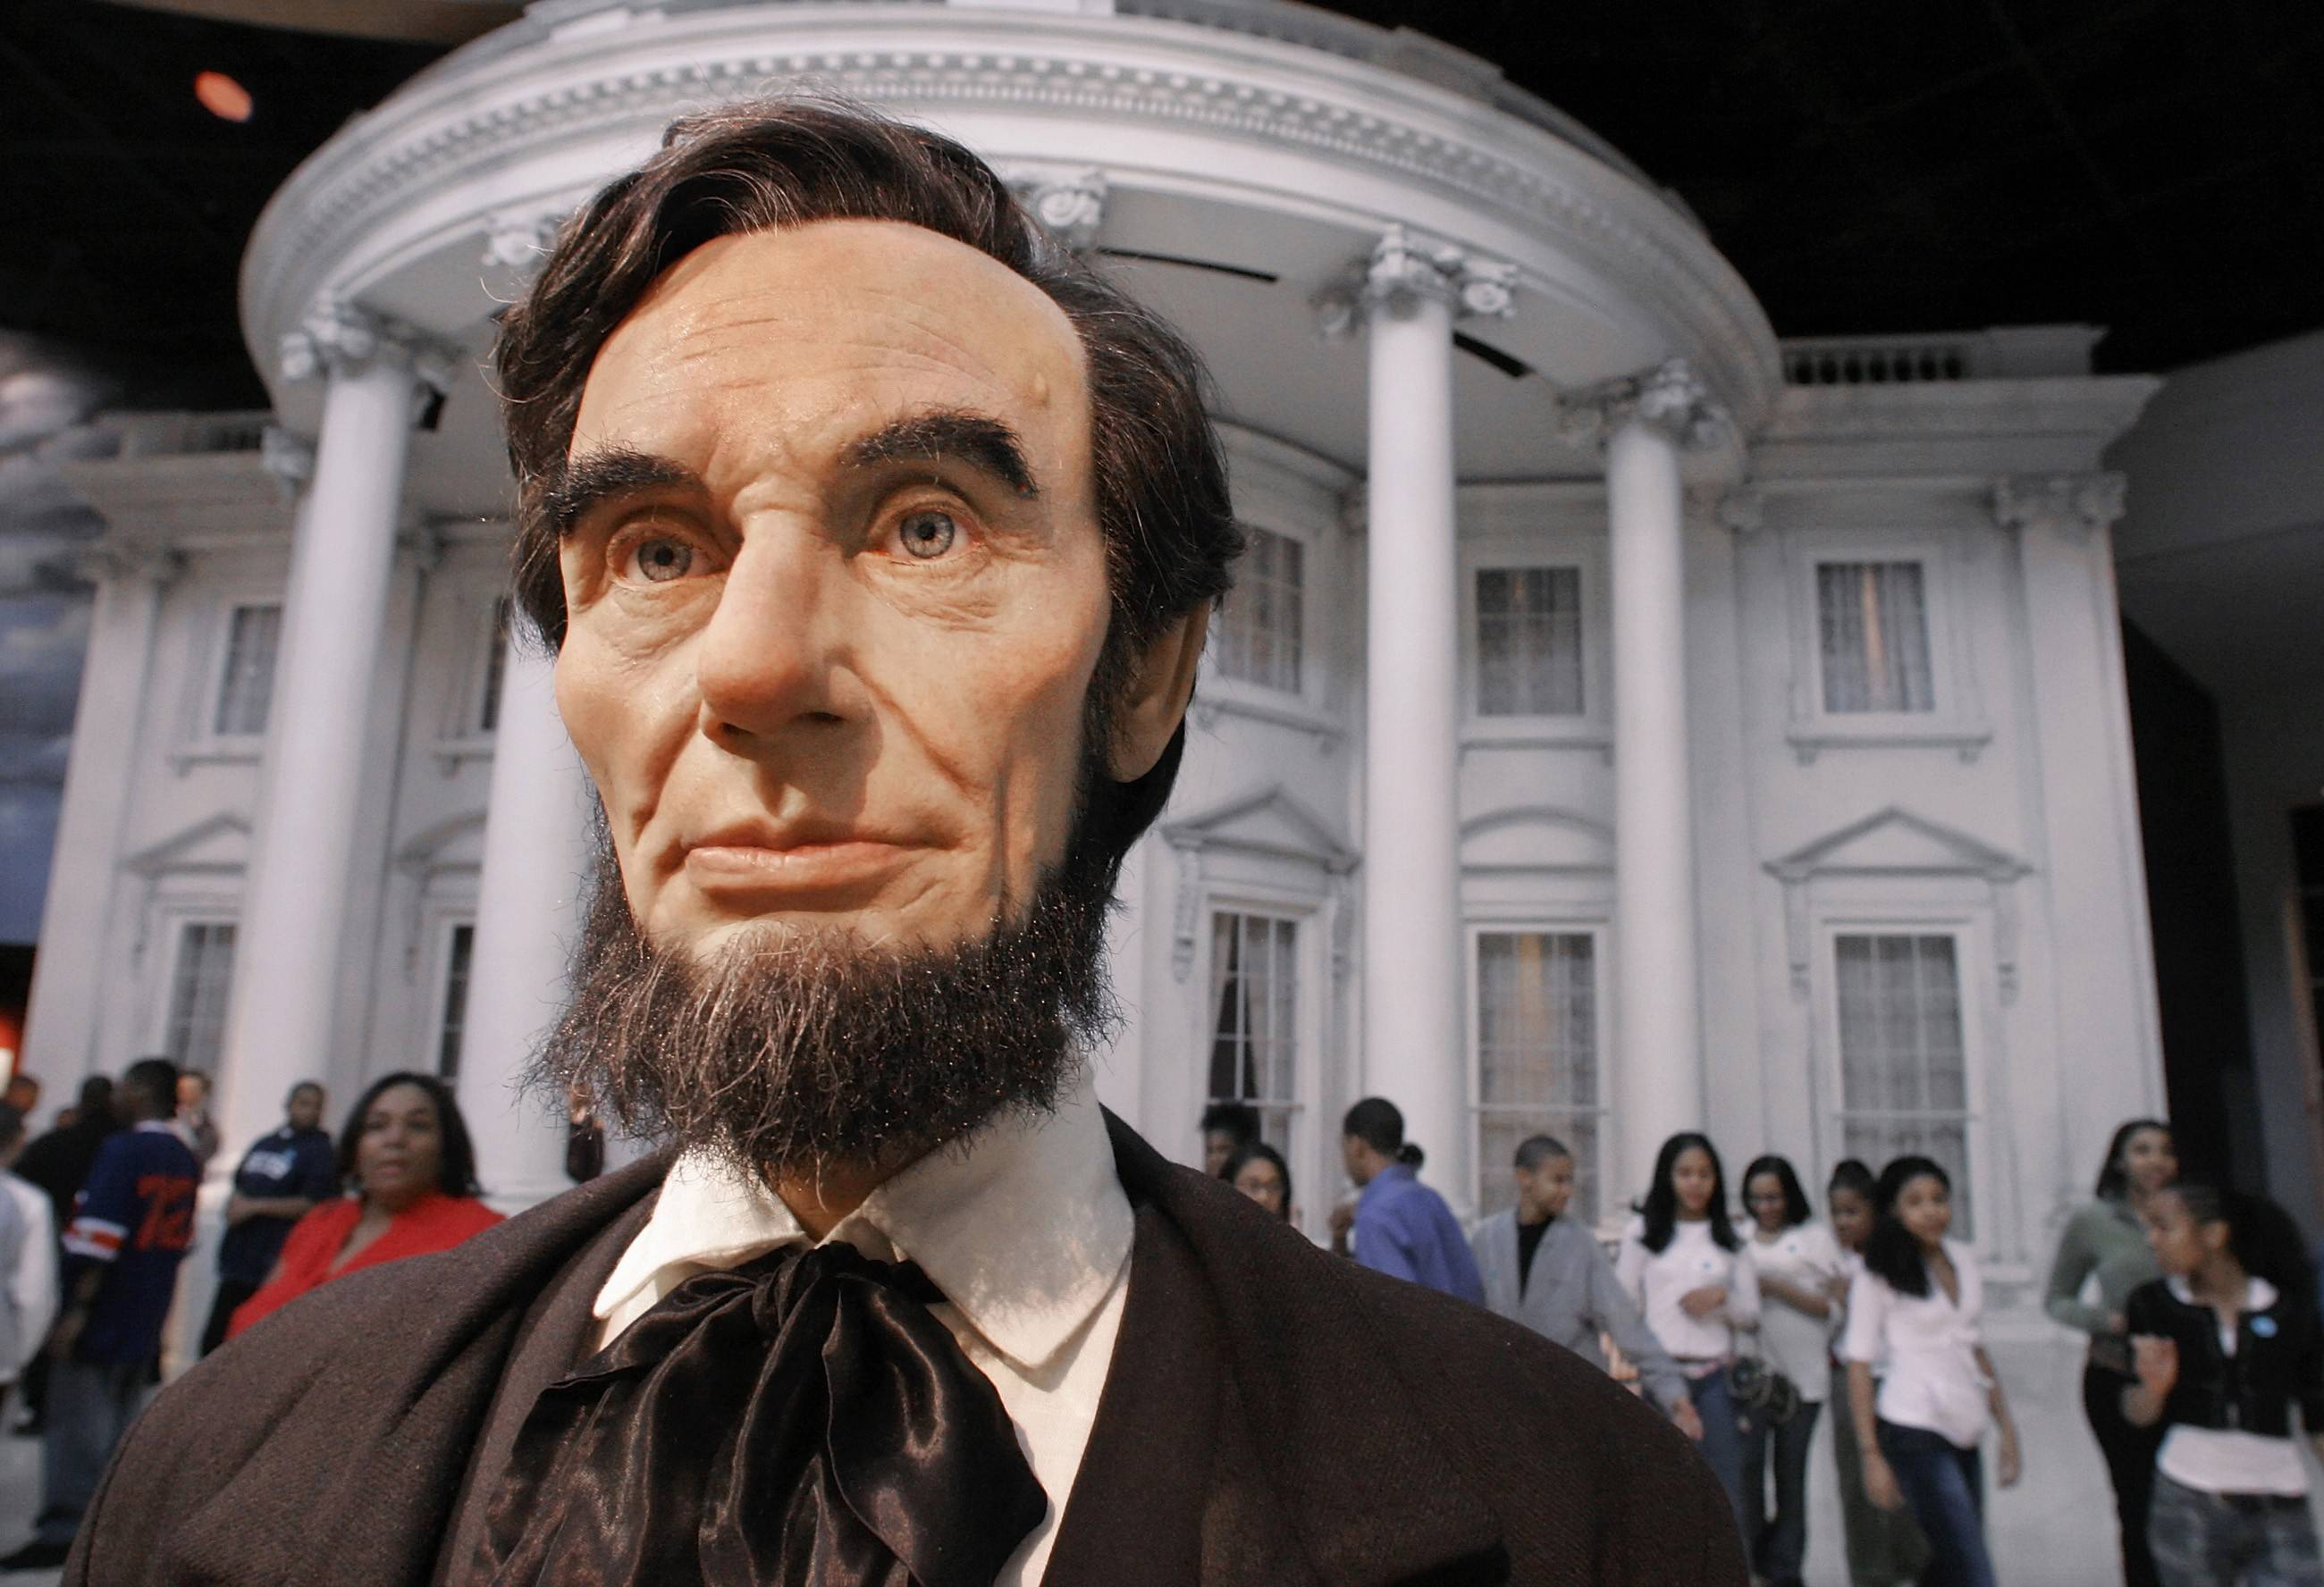 A replica of Abraham Lincoln, in 1861, and the White House, is seen by visitors as they enter the Abraham Lincoln Presidential Museum in Springfield, Ill., on the anniversary of Lincoln's birthday Monday, Feb. 12, 2007. (AP Photo/Seth Perlman)